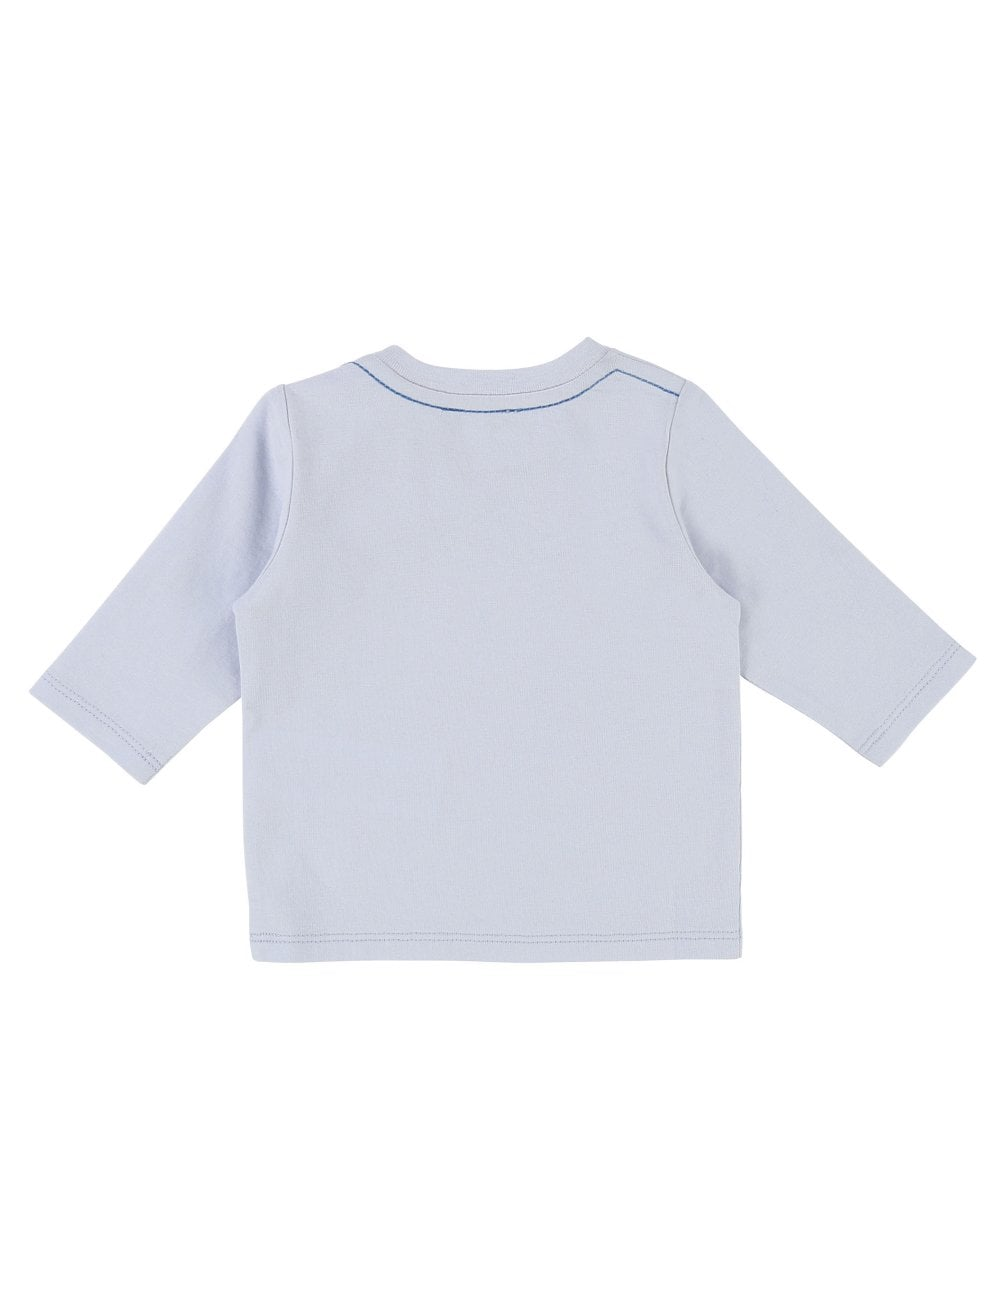 3f2542ceee8c Hugo Boss Kids Baby Boys Crew Neck Tee